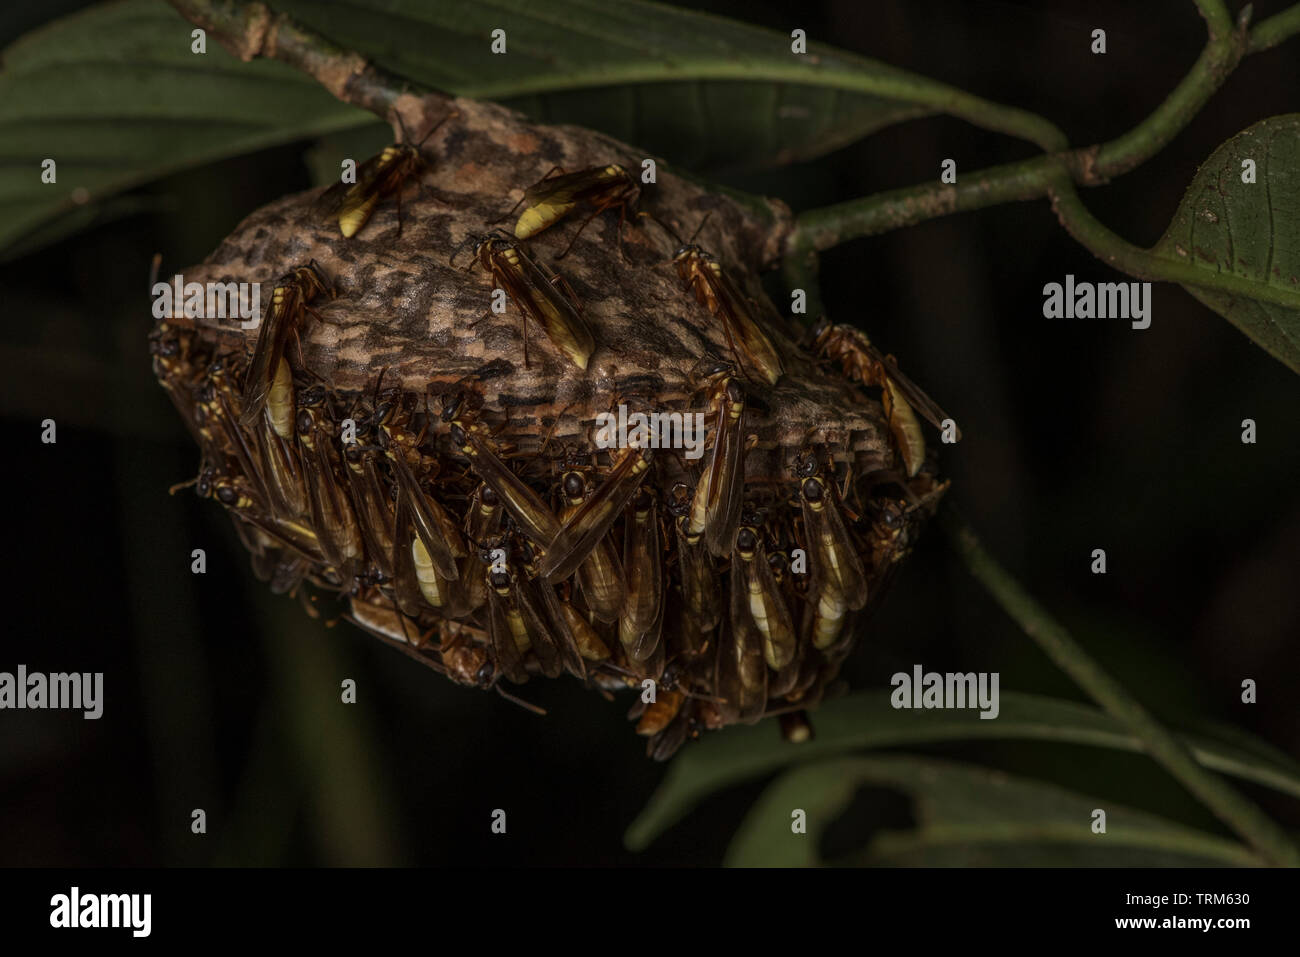 A wasp nest from Yasuni National Park in Ecuador. - Stock Image